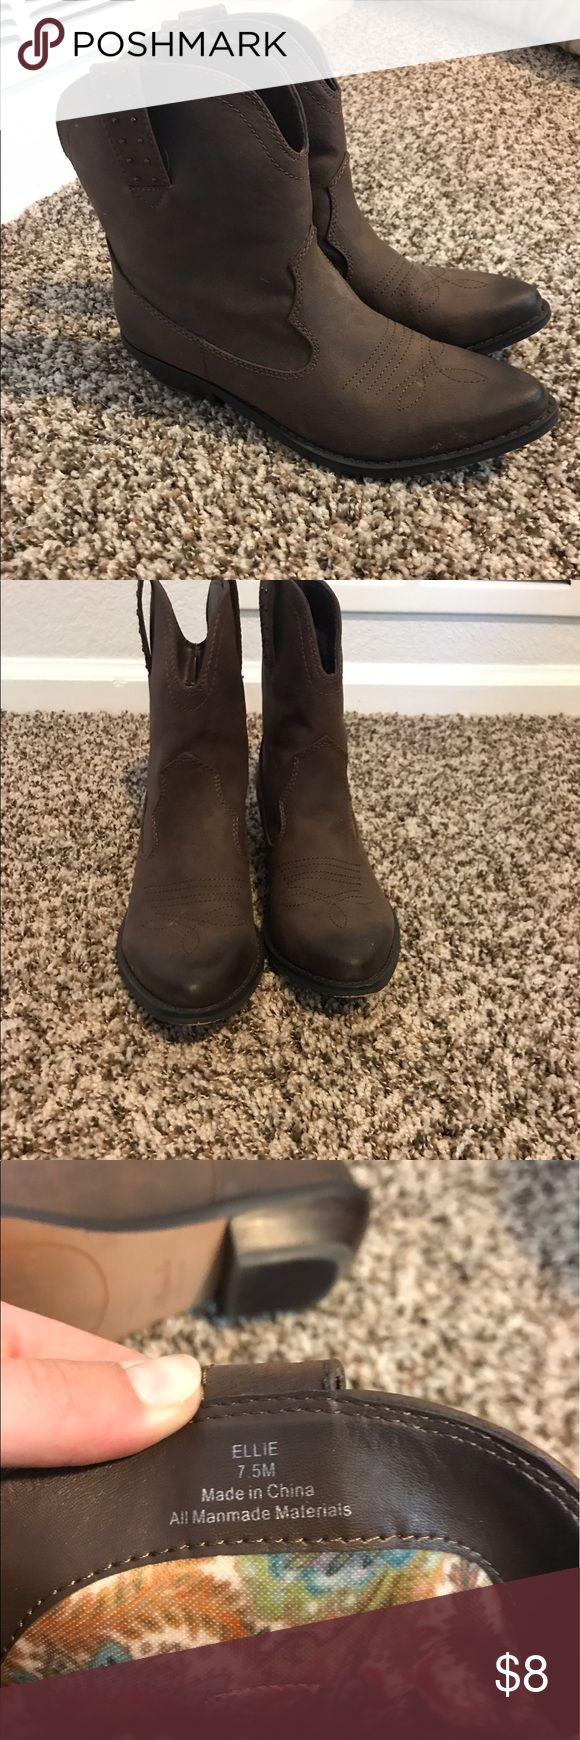 Miranda Lambert Ellie Cowboy Boot Brown Cowboy Boot Size 7.5 Shoes Ankle Boots & Booties